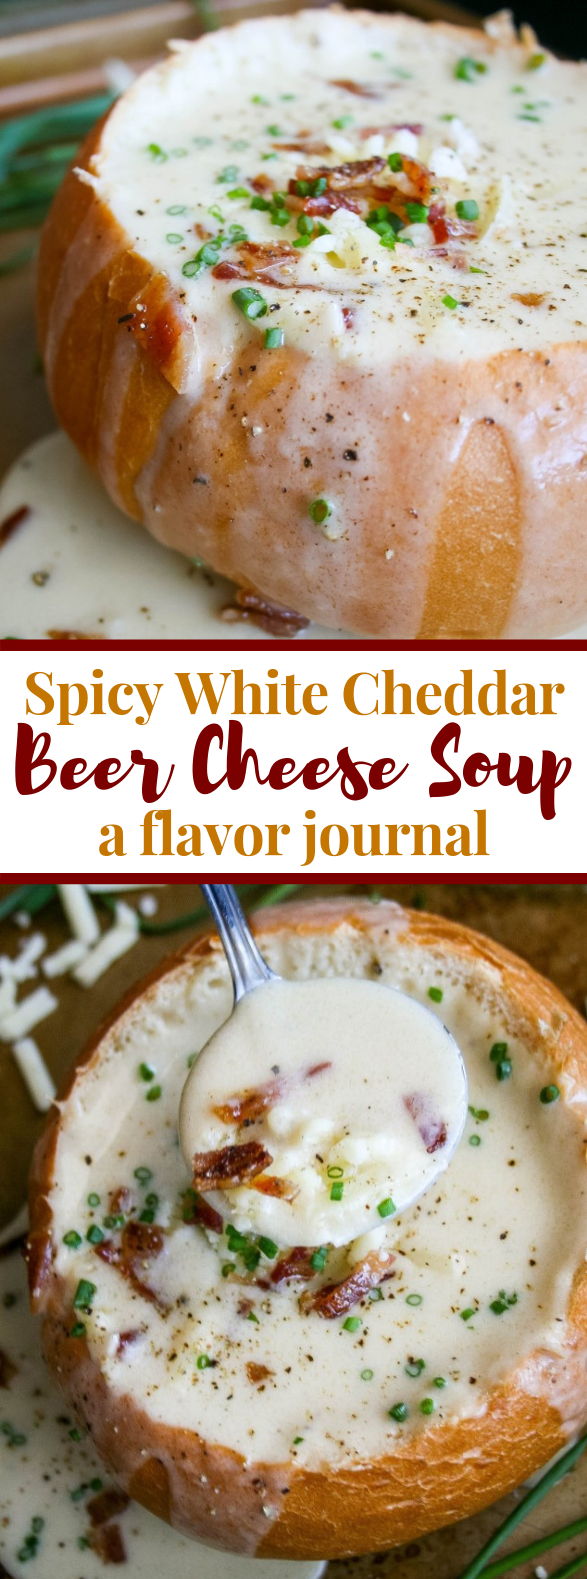 spicy white cheddar beer cheese soup #dinner #comfortfood